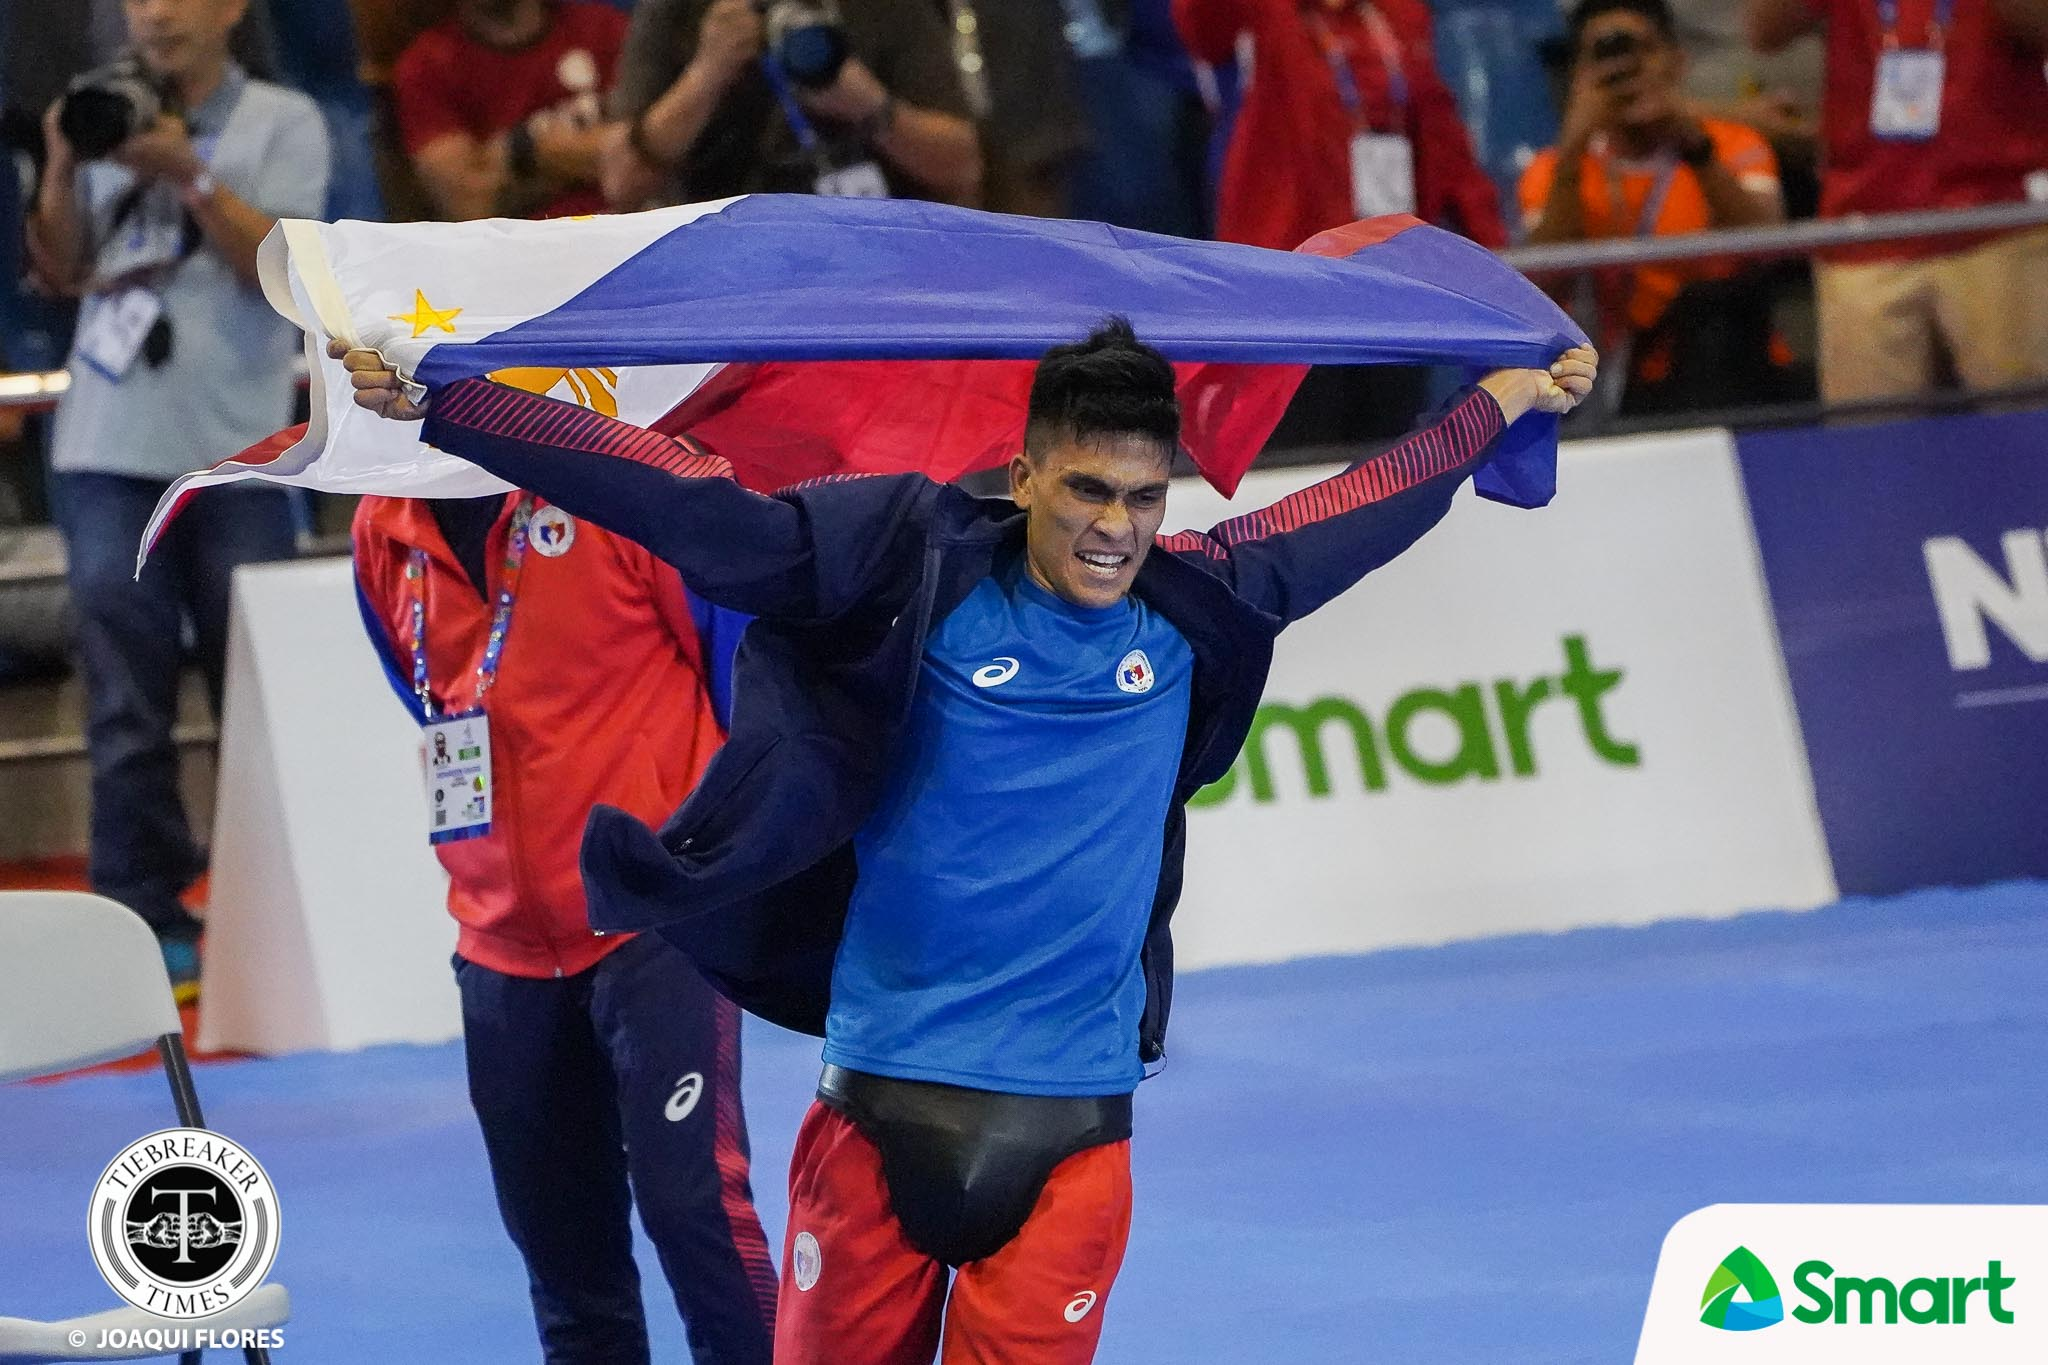 Tiebreaker Times Philippines sweeps SEA Games Men's Arnis events 2019 SEA Games Arnis News  Villardo Cunamay Philippine Men's National Arnis Team Niño Mark Talledo Mike Bañares Dexler Bolambao 2019 SEA Games - Arnis 2019 SEA Games